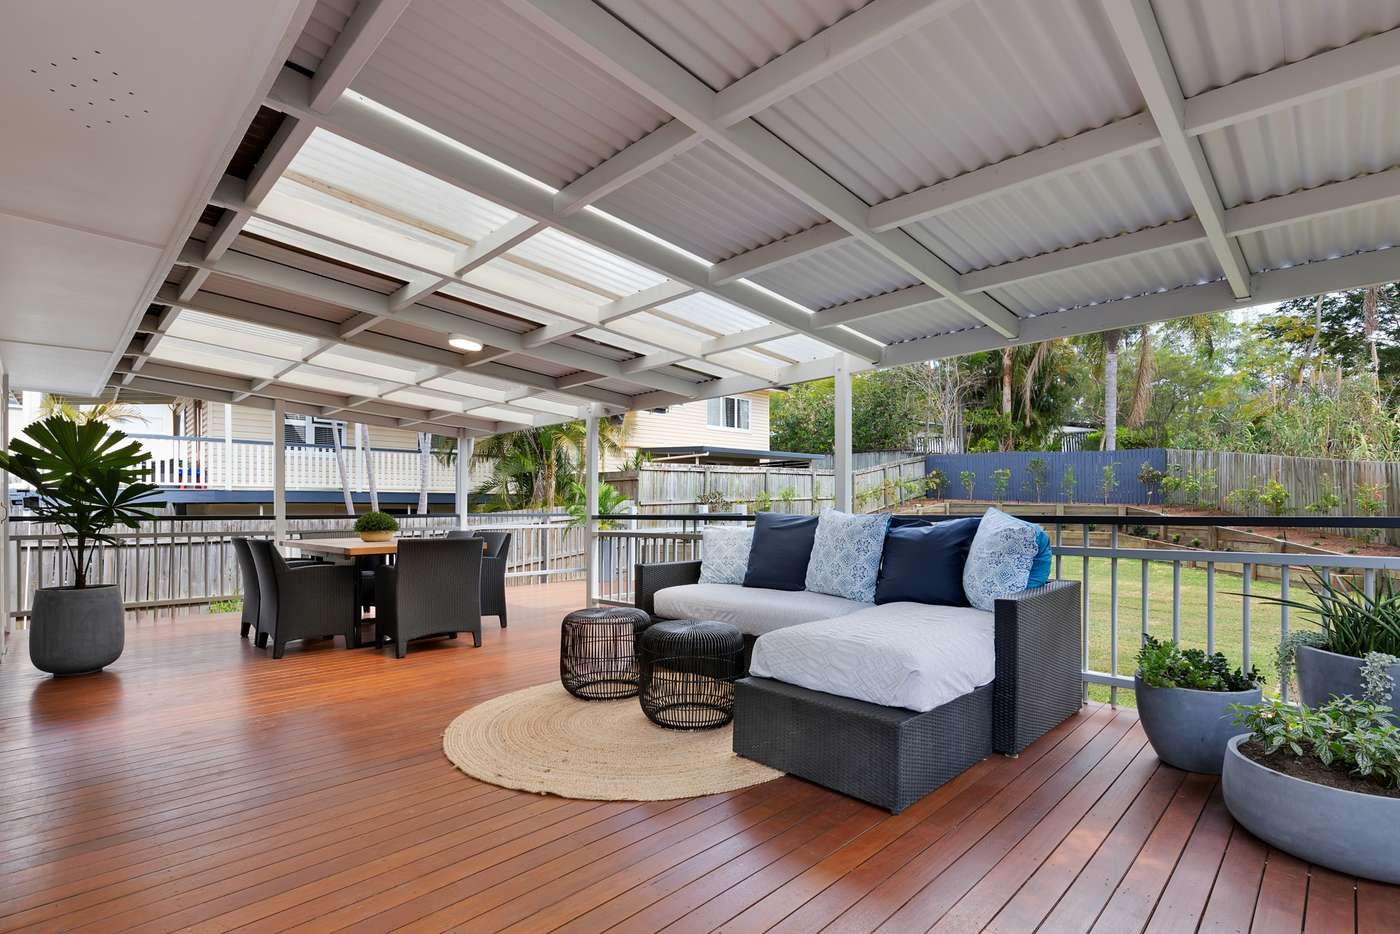 Sixth view of Homely house listing, 12 Gymea Street, The Gap QLD 4061